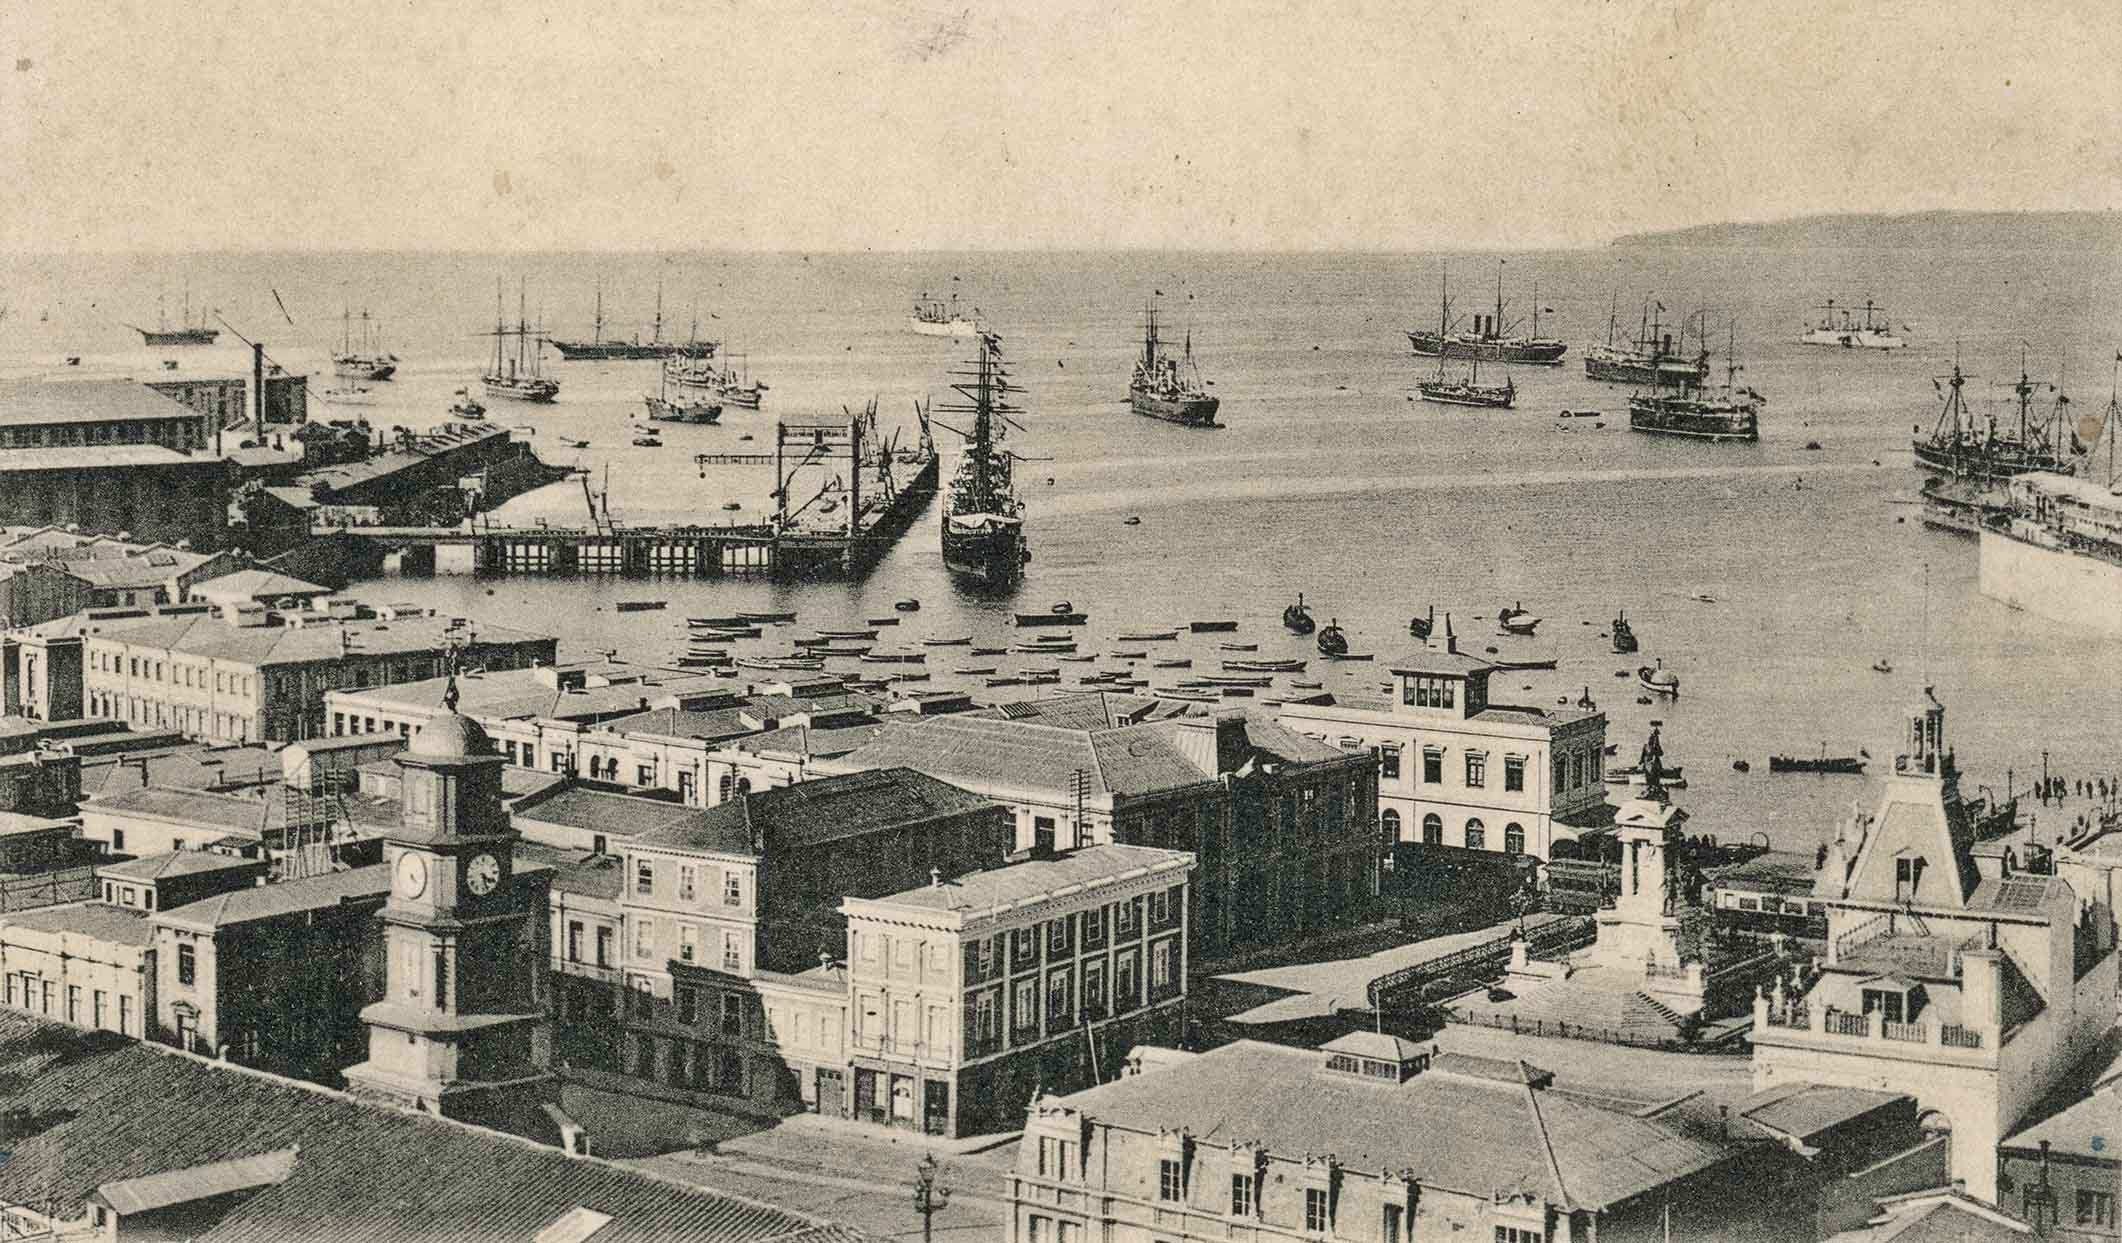 Enterreno - Fotos históricas de chile - fotos antiguas de Chile - Vista a Plaza Sotomayor de Valparaíso en 1905